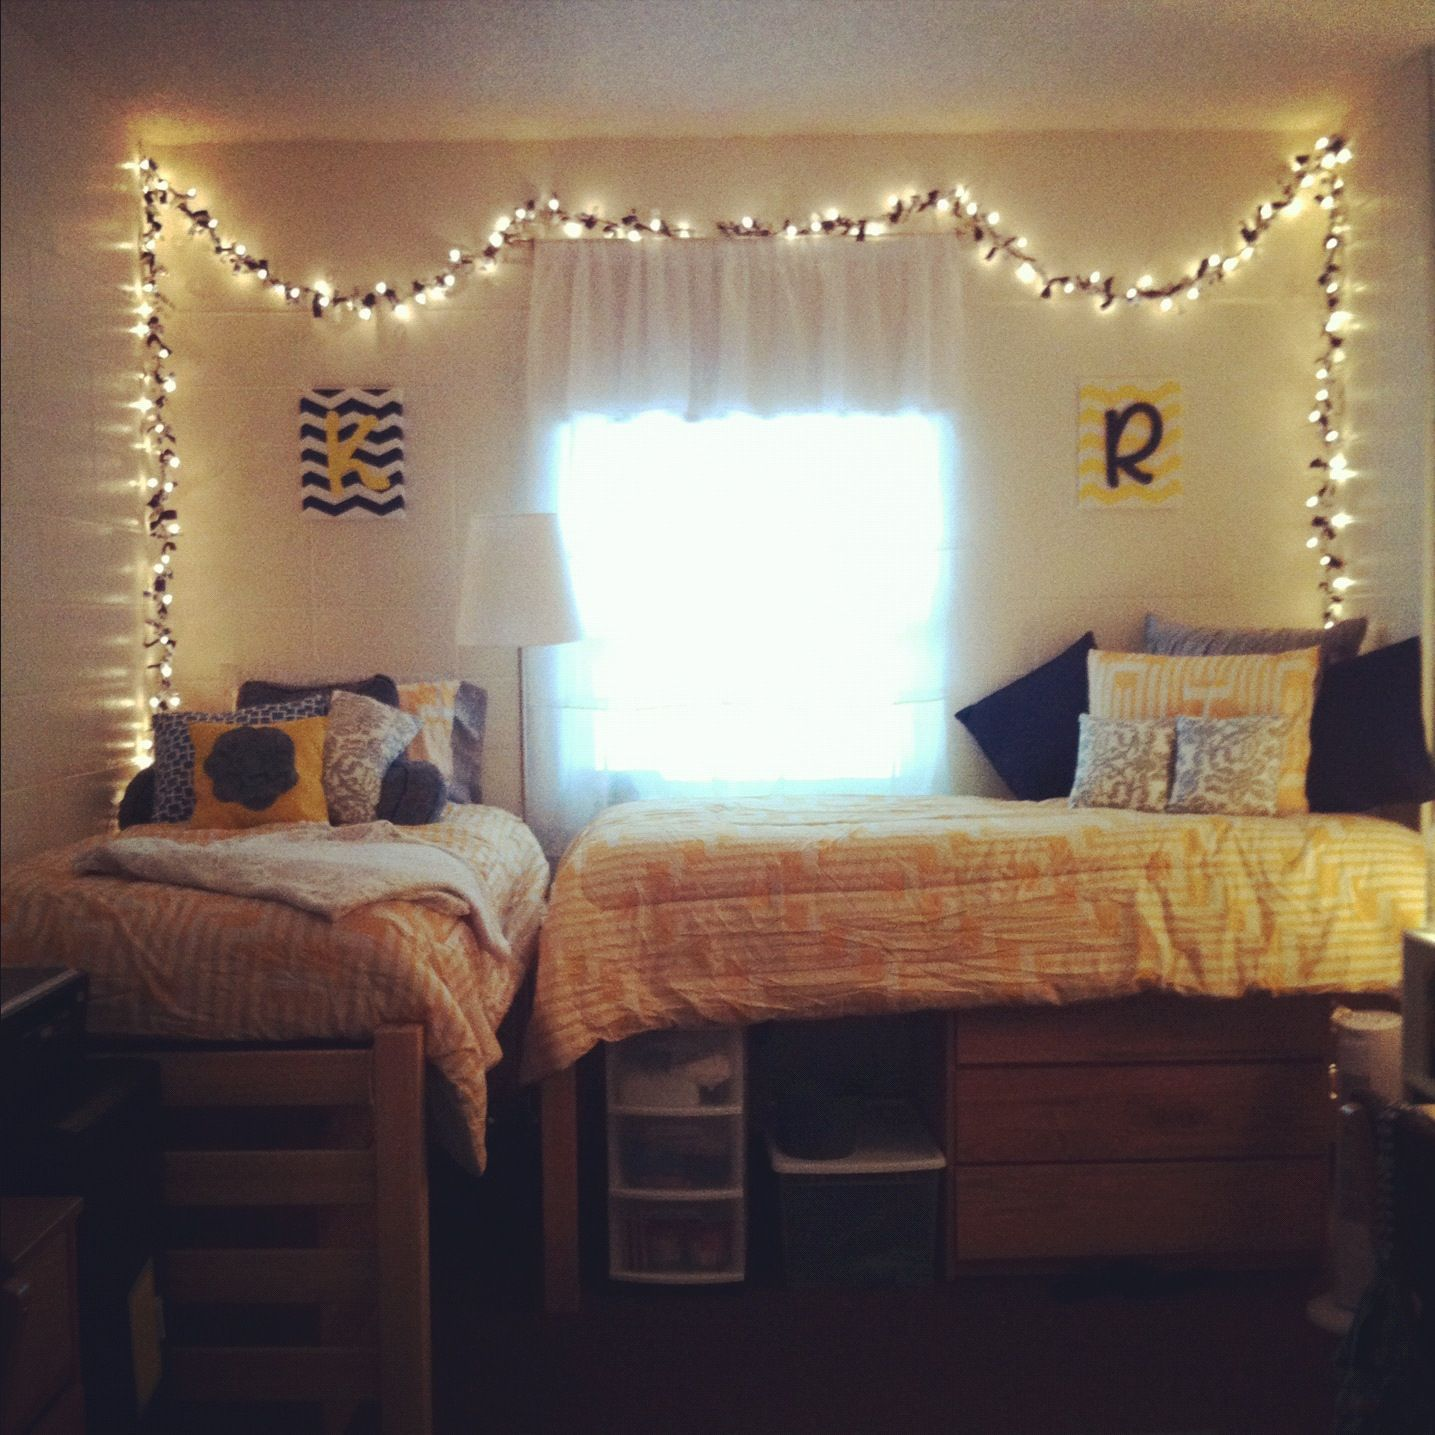 Decorative lights for dorm room - White Christmas Lights Around The Edges Of The Walls Would Look Great On The Walls Dorm Room